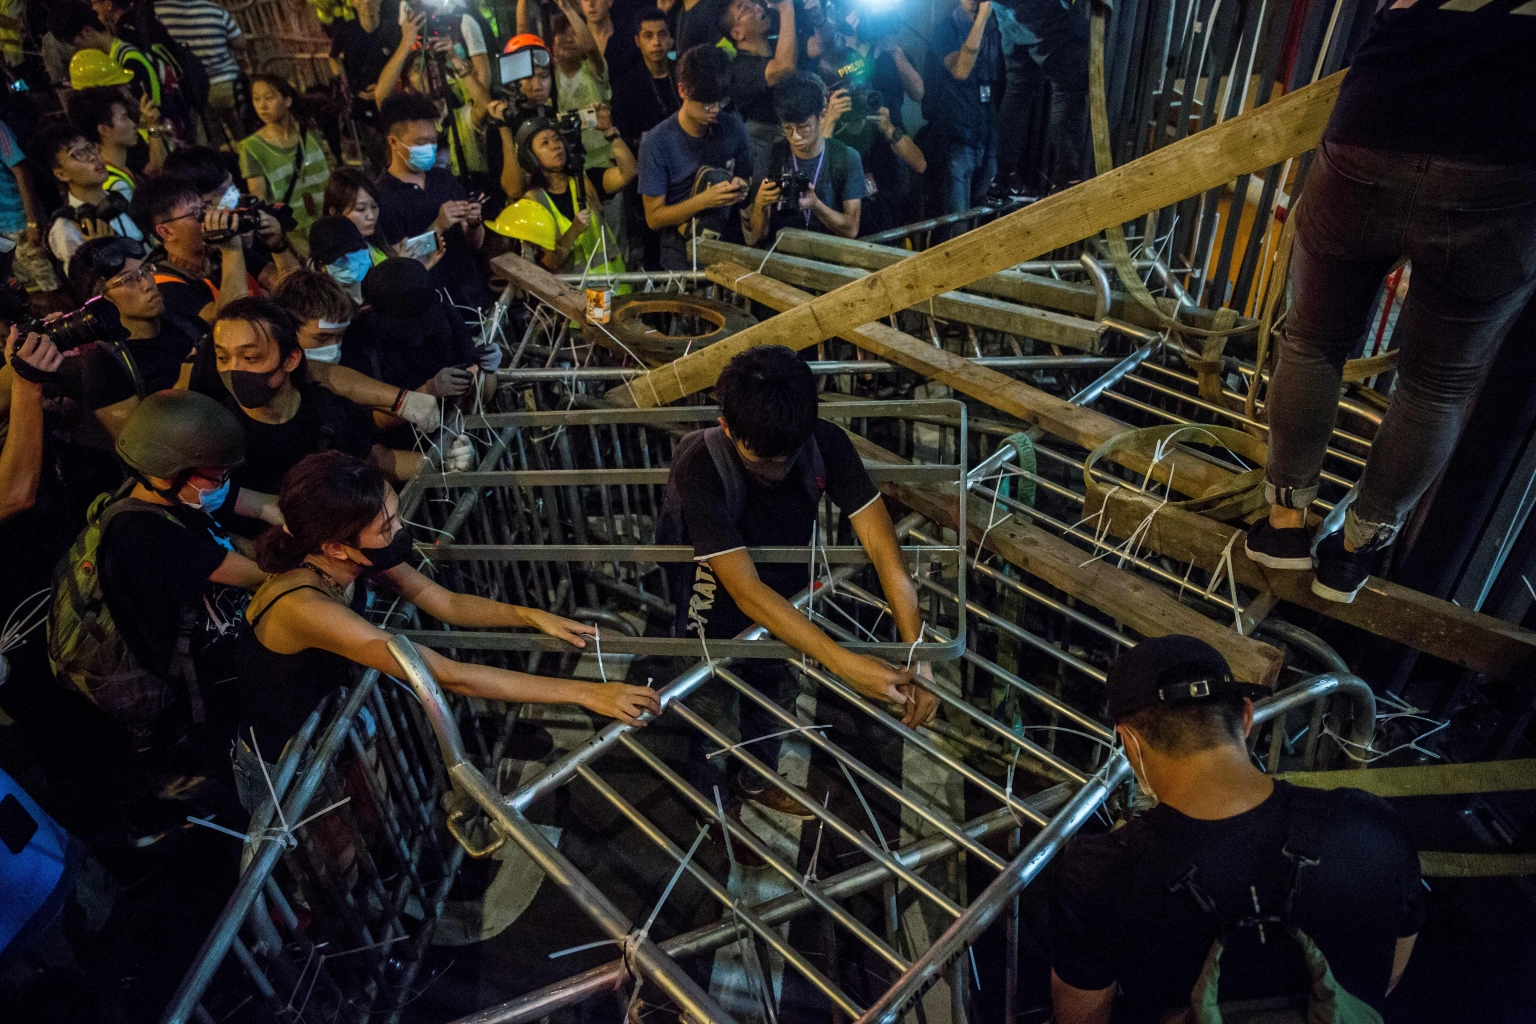 Protesters secure barricades to a gate at the police headquarters in Hong Kong late on June 26. ISAAC LAWRENCE/AFP/Getty Images